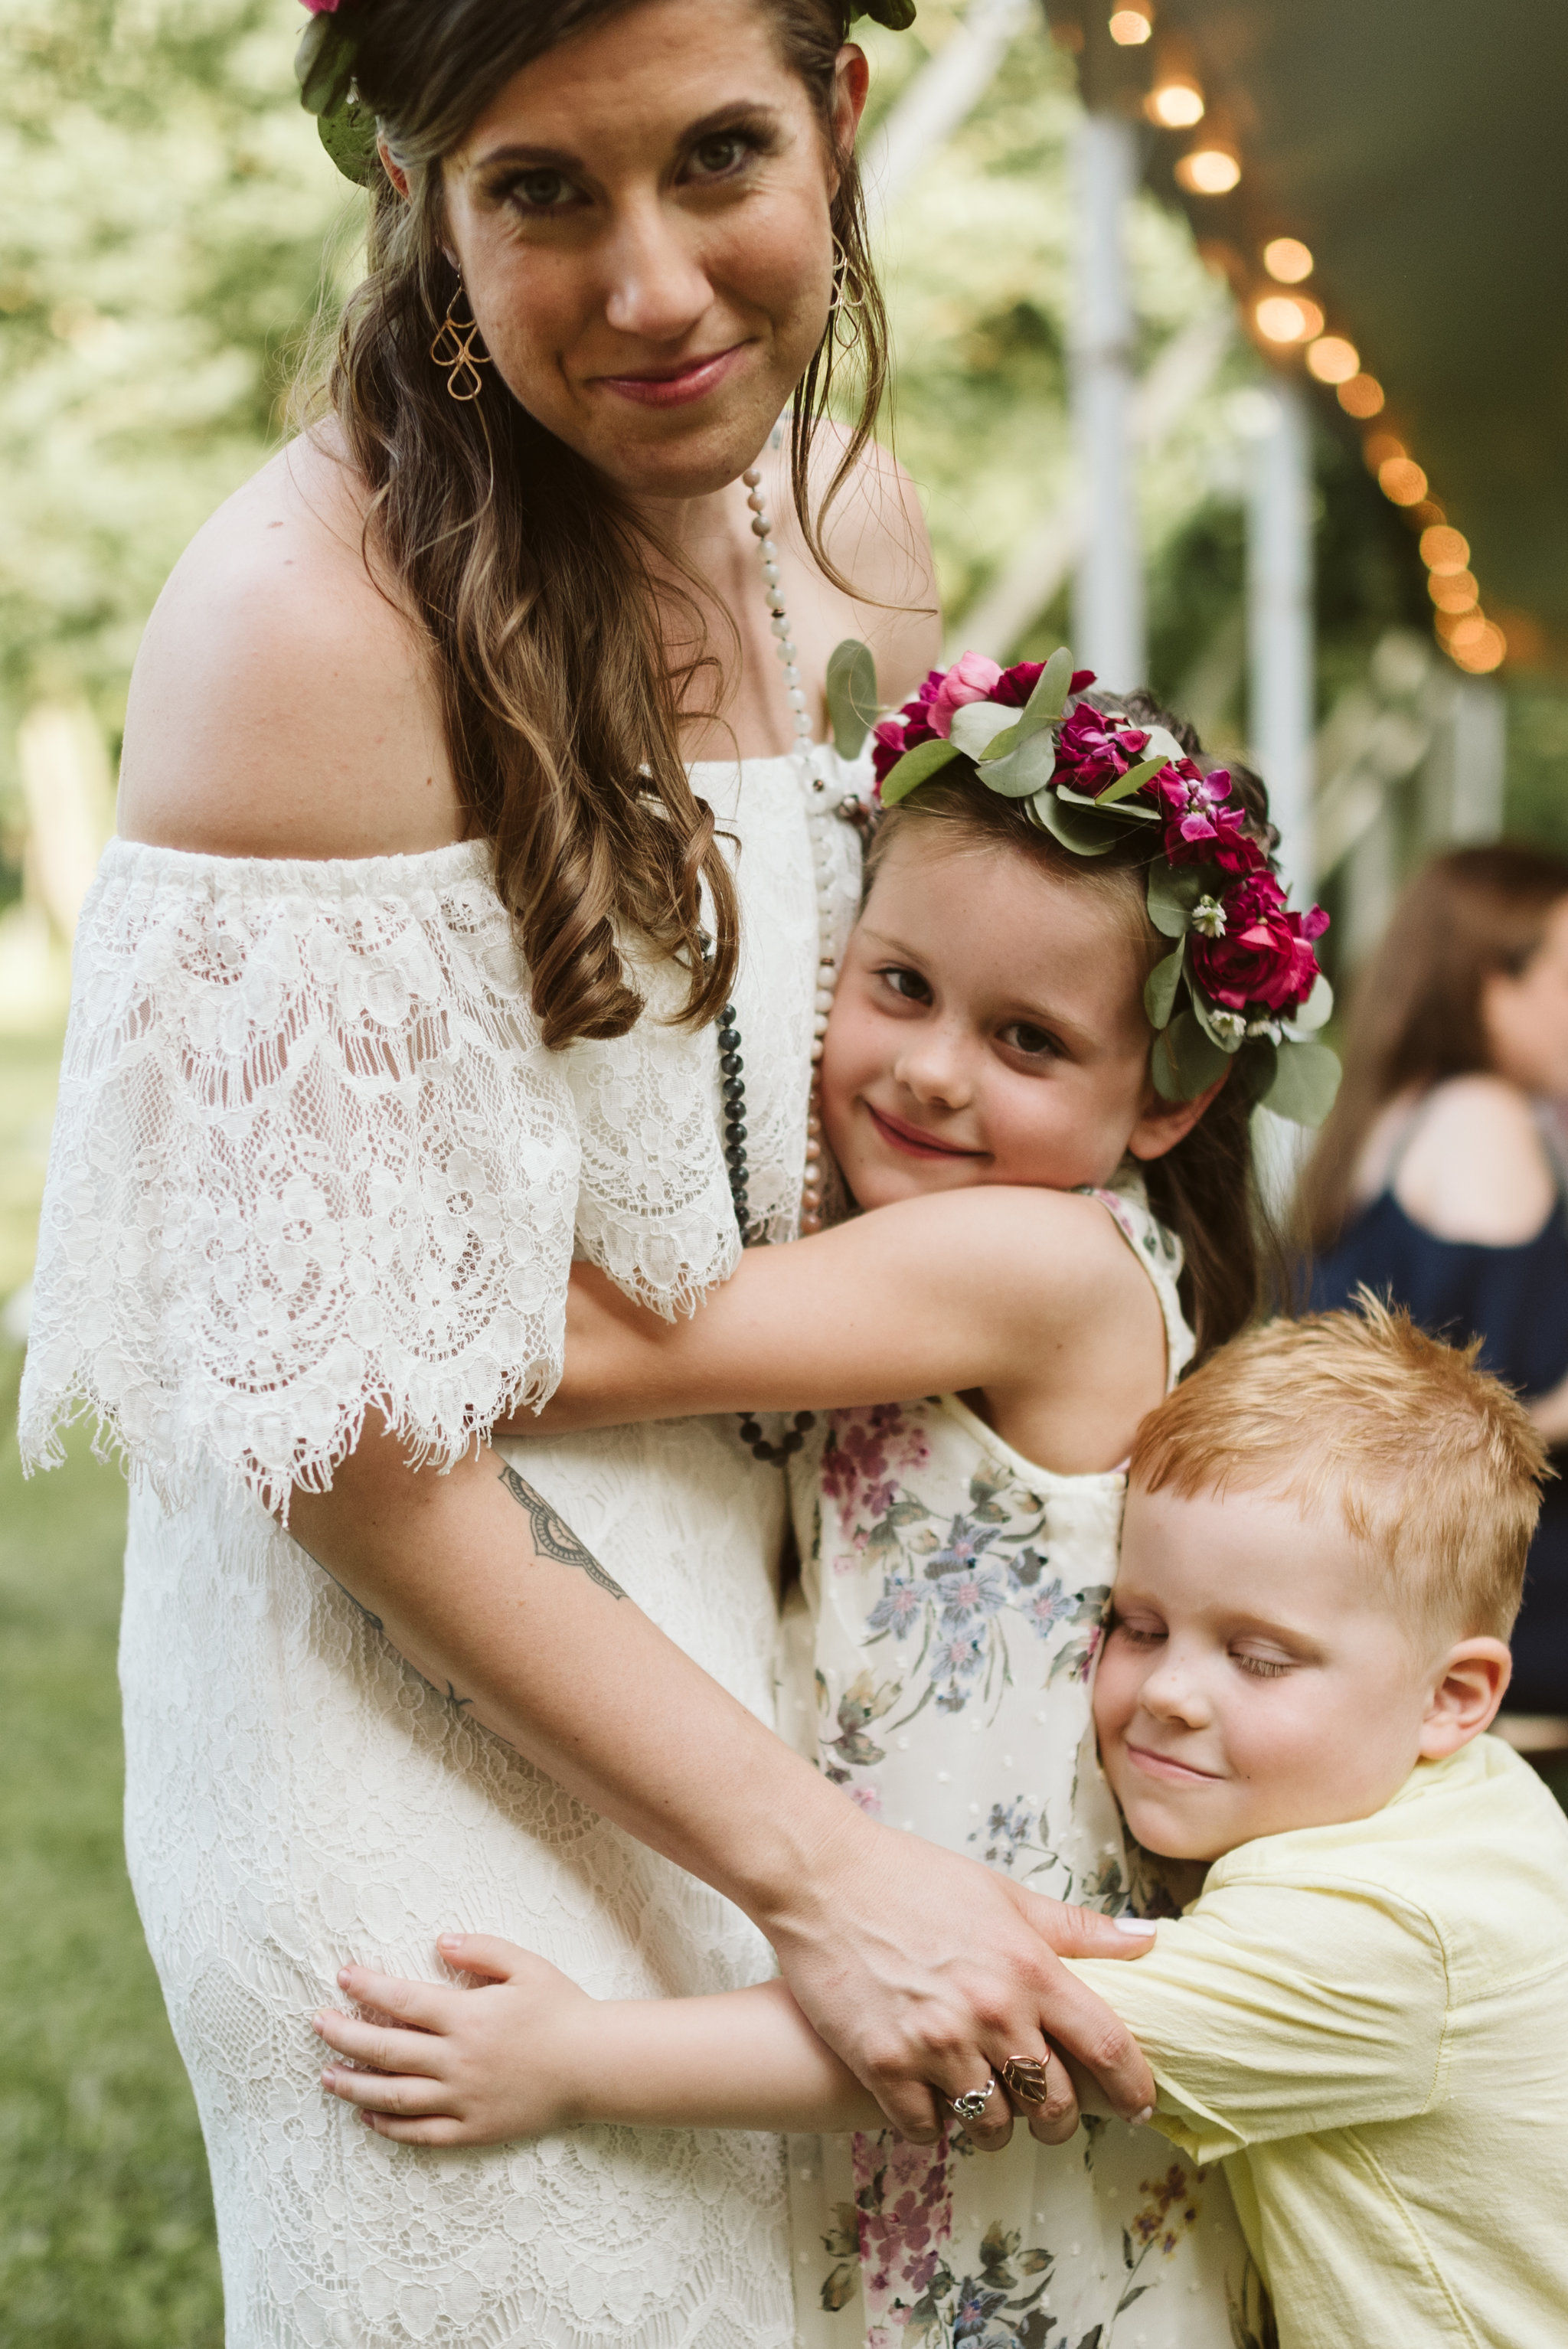 Annapolis, Quaker Wedding, Maryland Wedding Photographer, Intimate, Small Wedding, Vintage, DIY, Bride Hugging Kids at Reception, Sweet Photo of Bride with Children